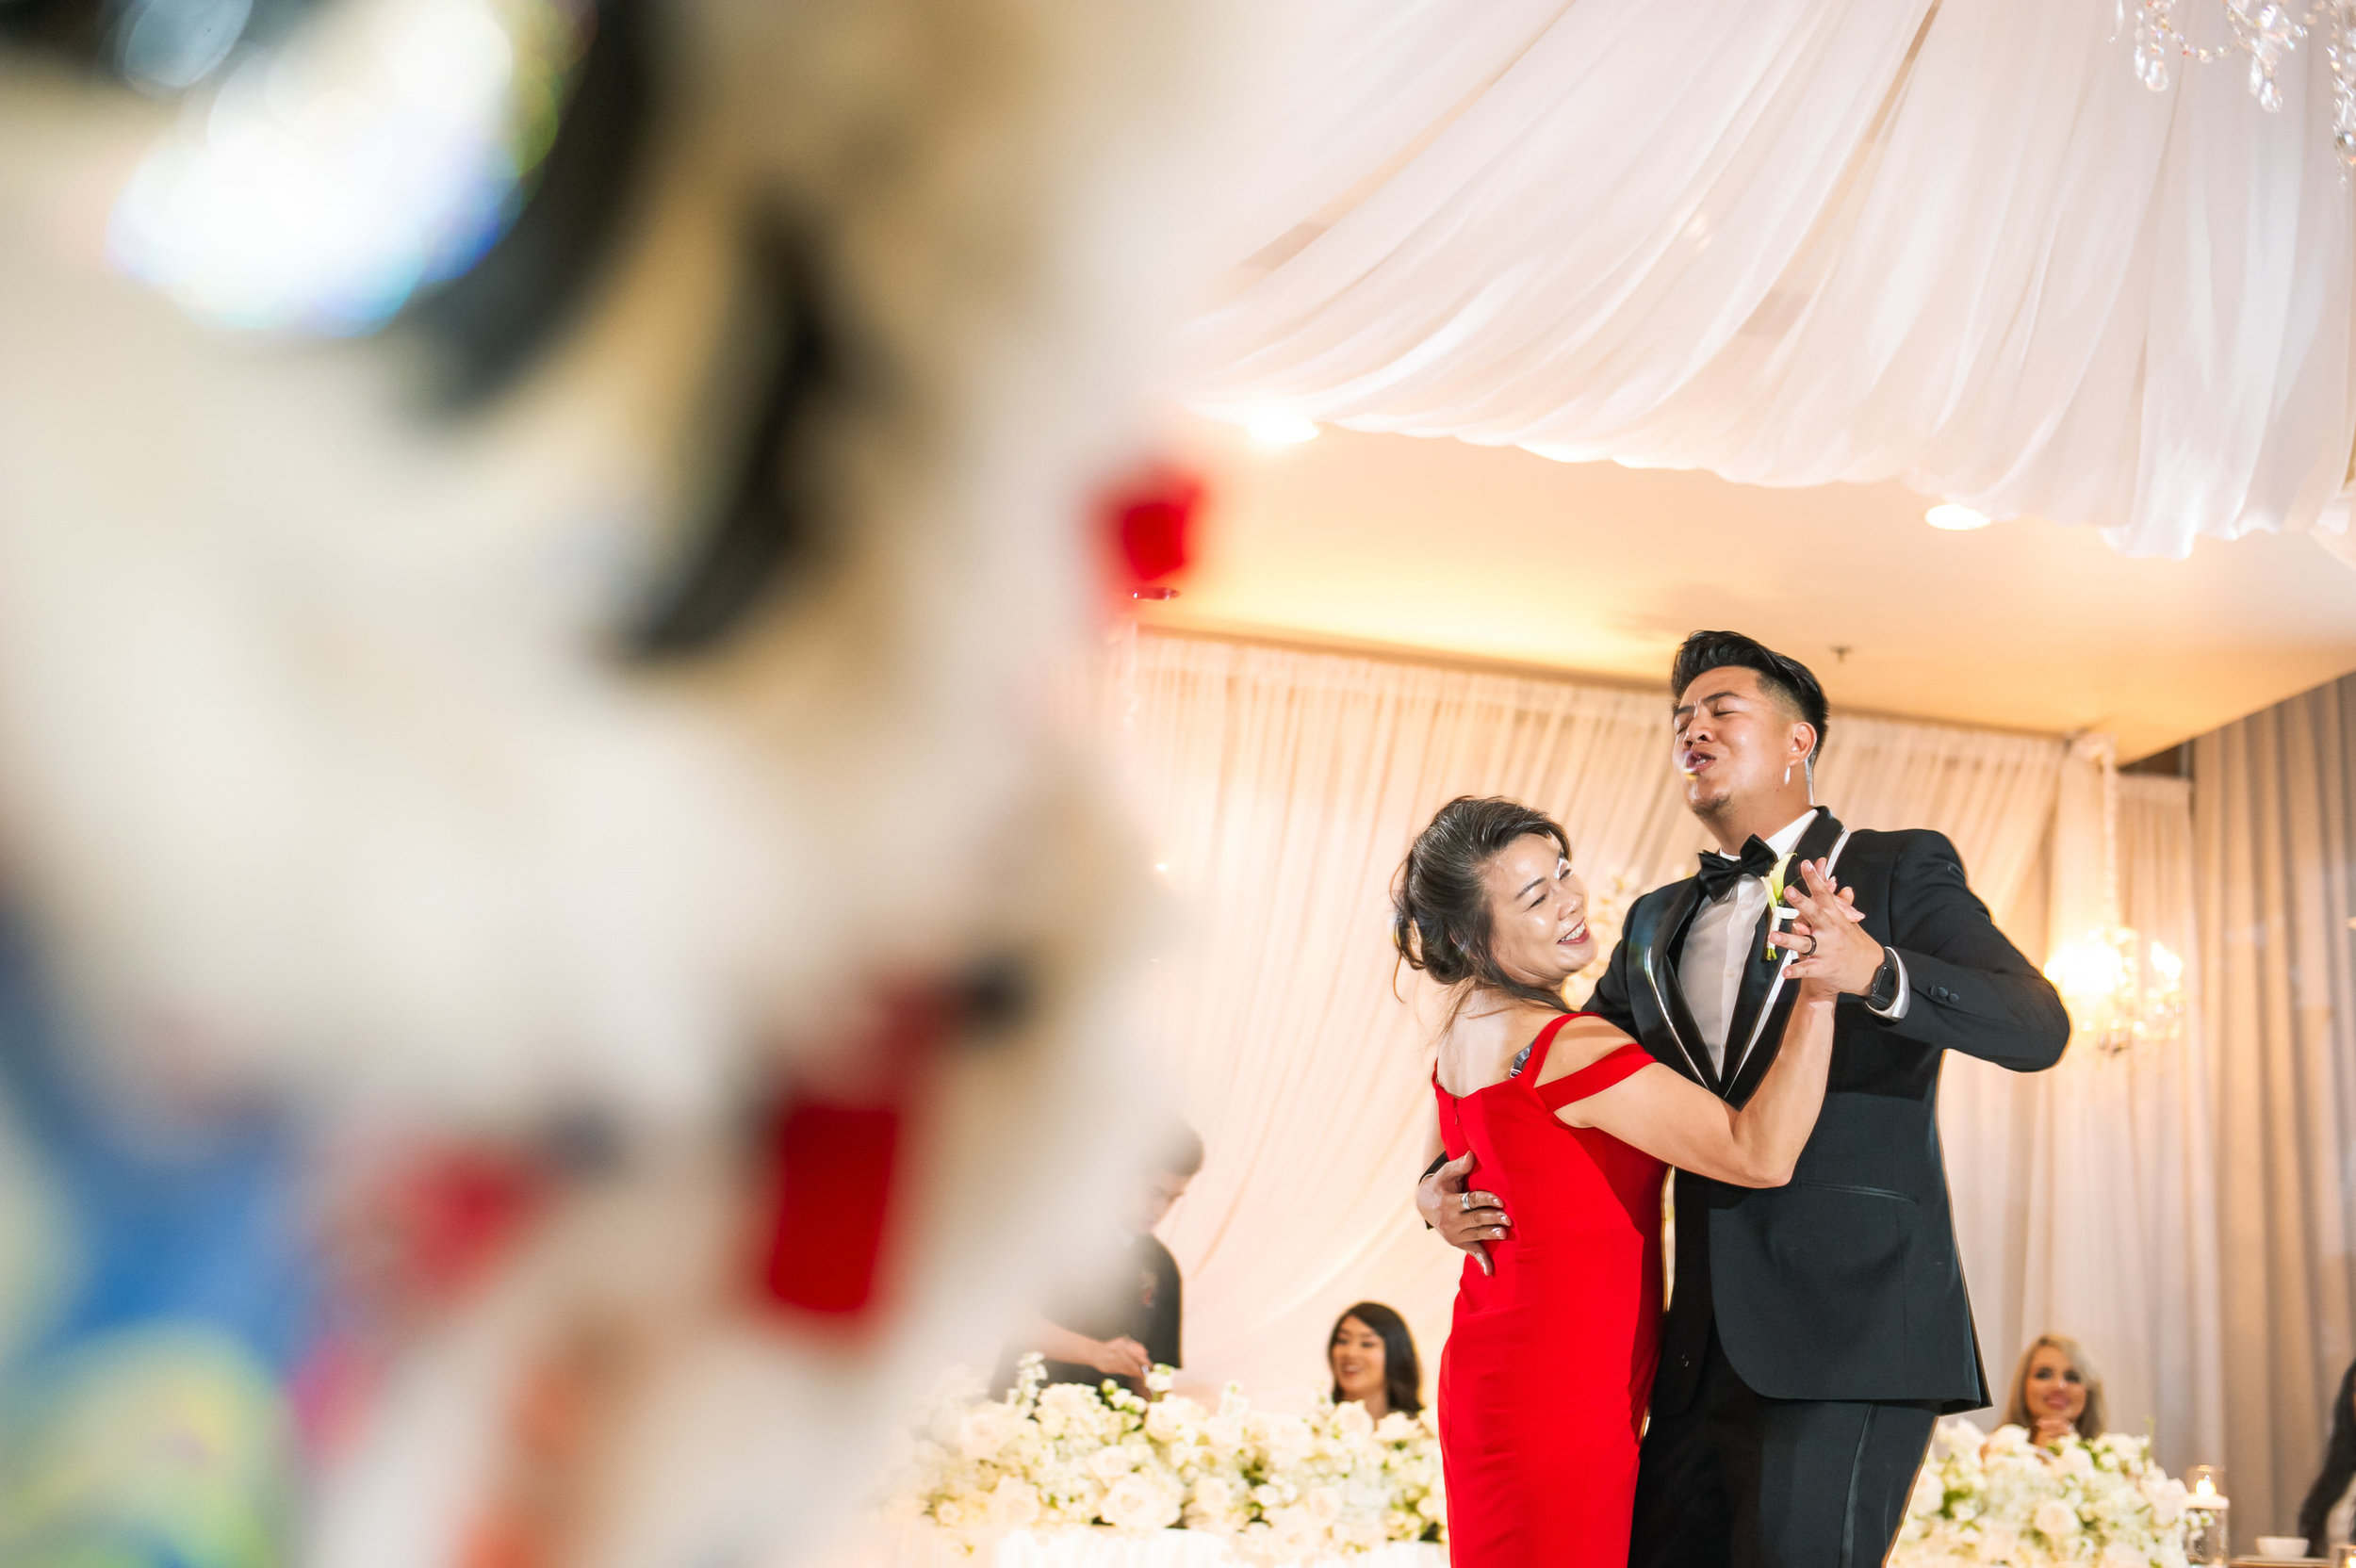 Dream_Wedding_Thanh_Thanh-21012.jpg